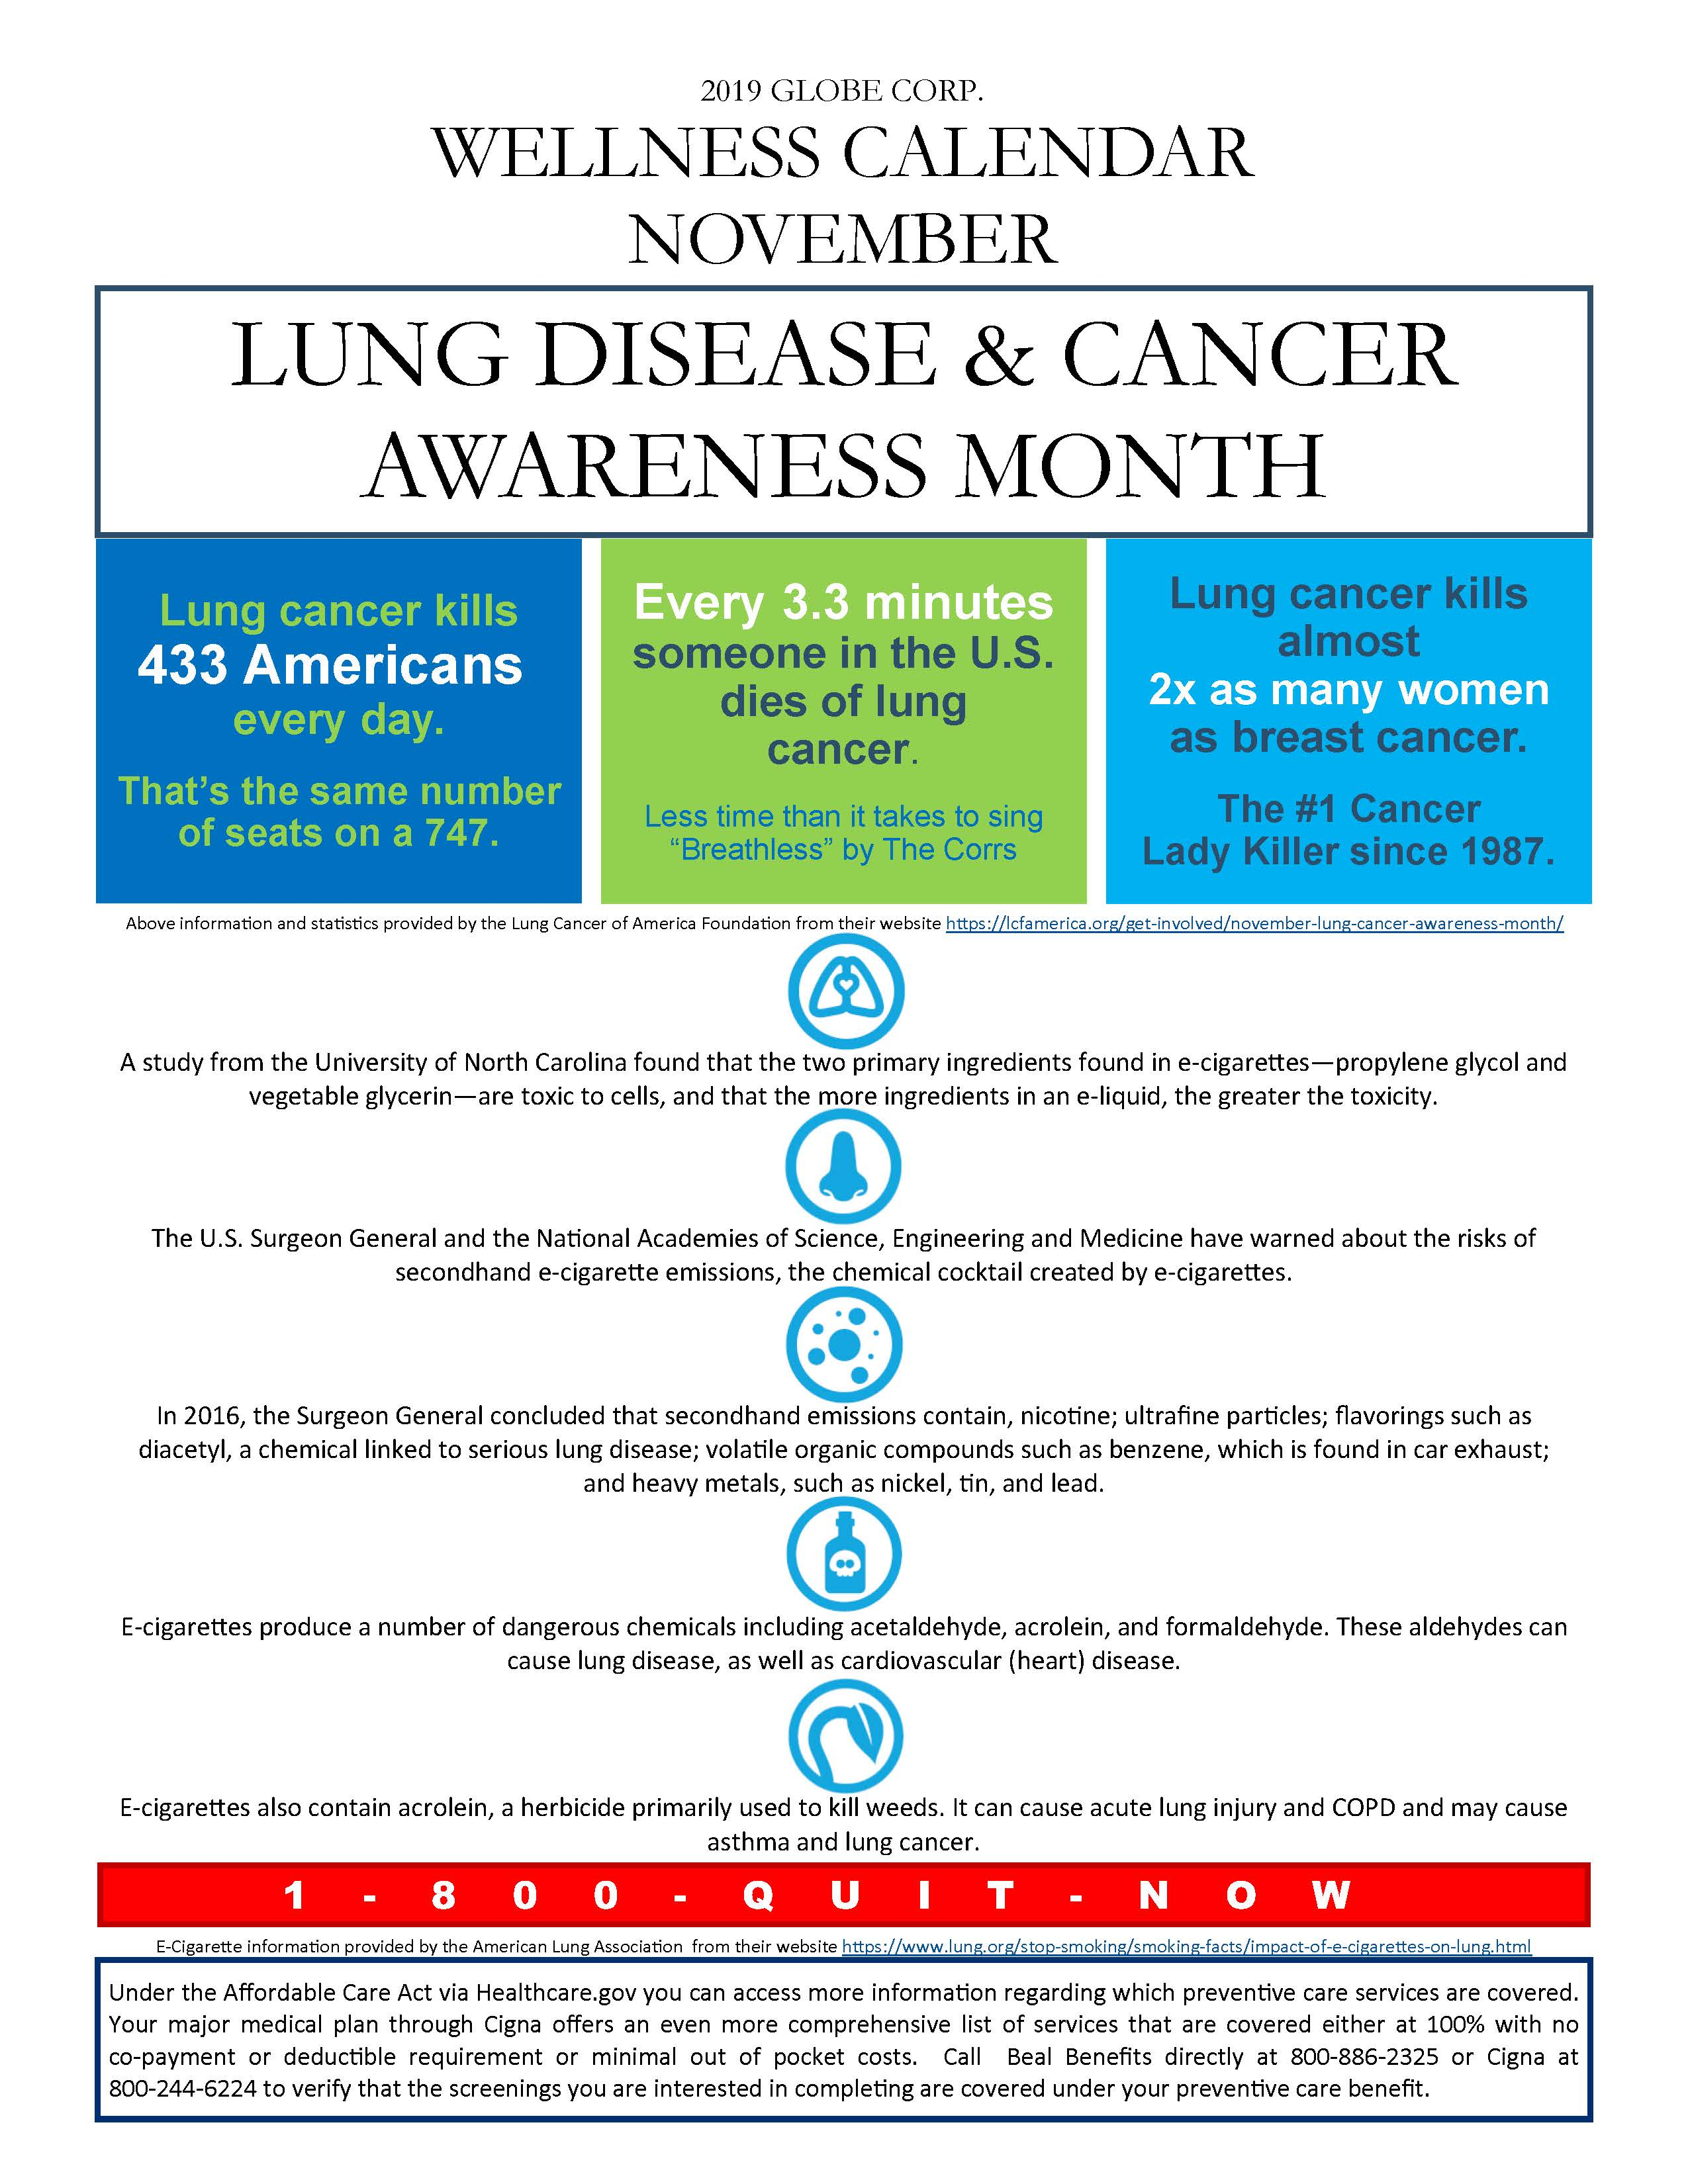 2019 November Lung Disease and Cancer